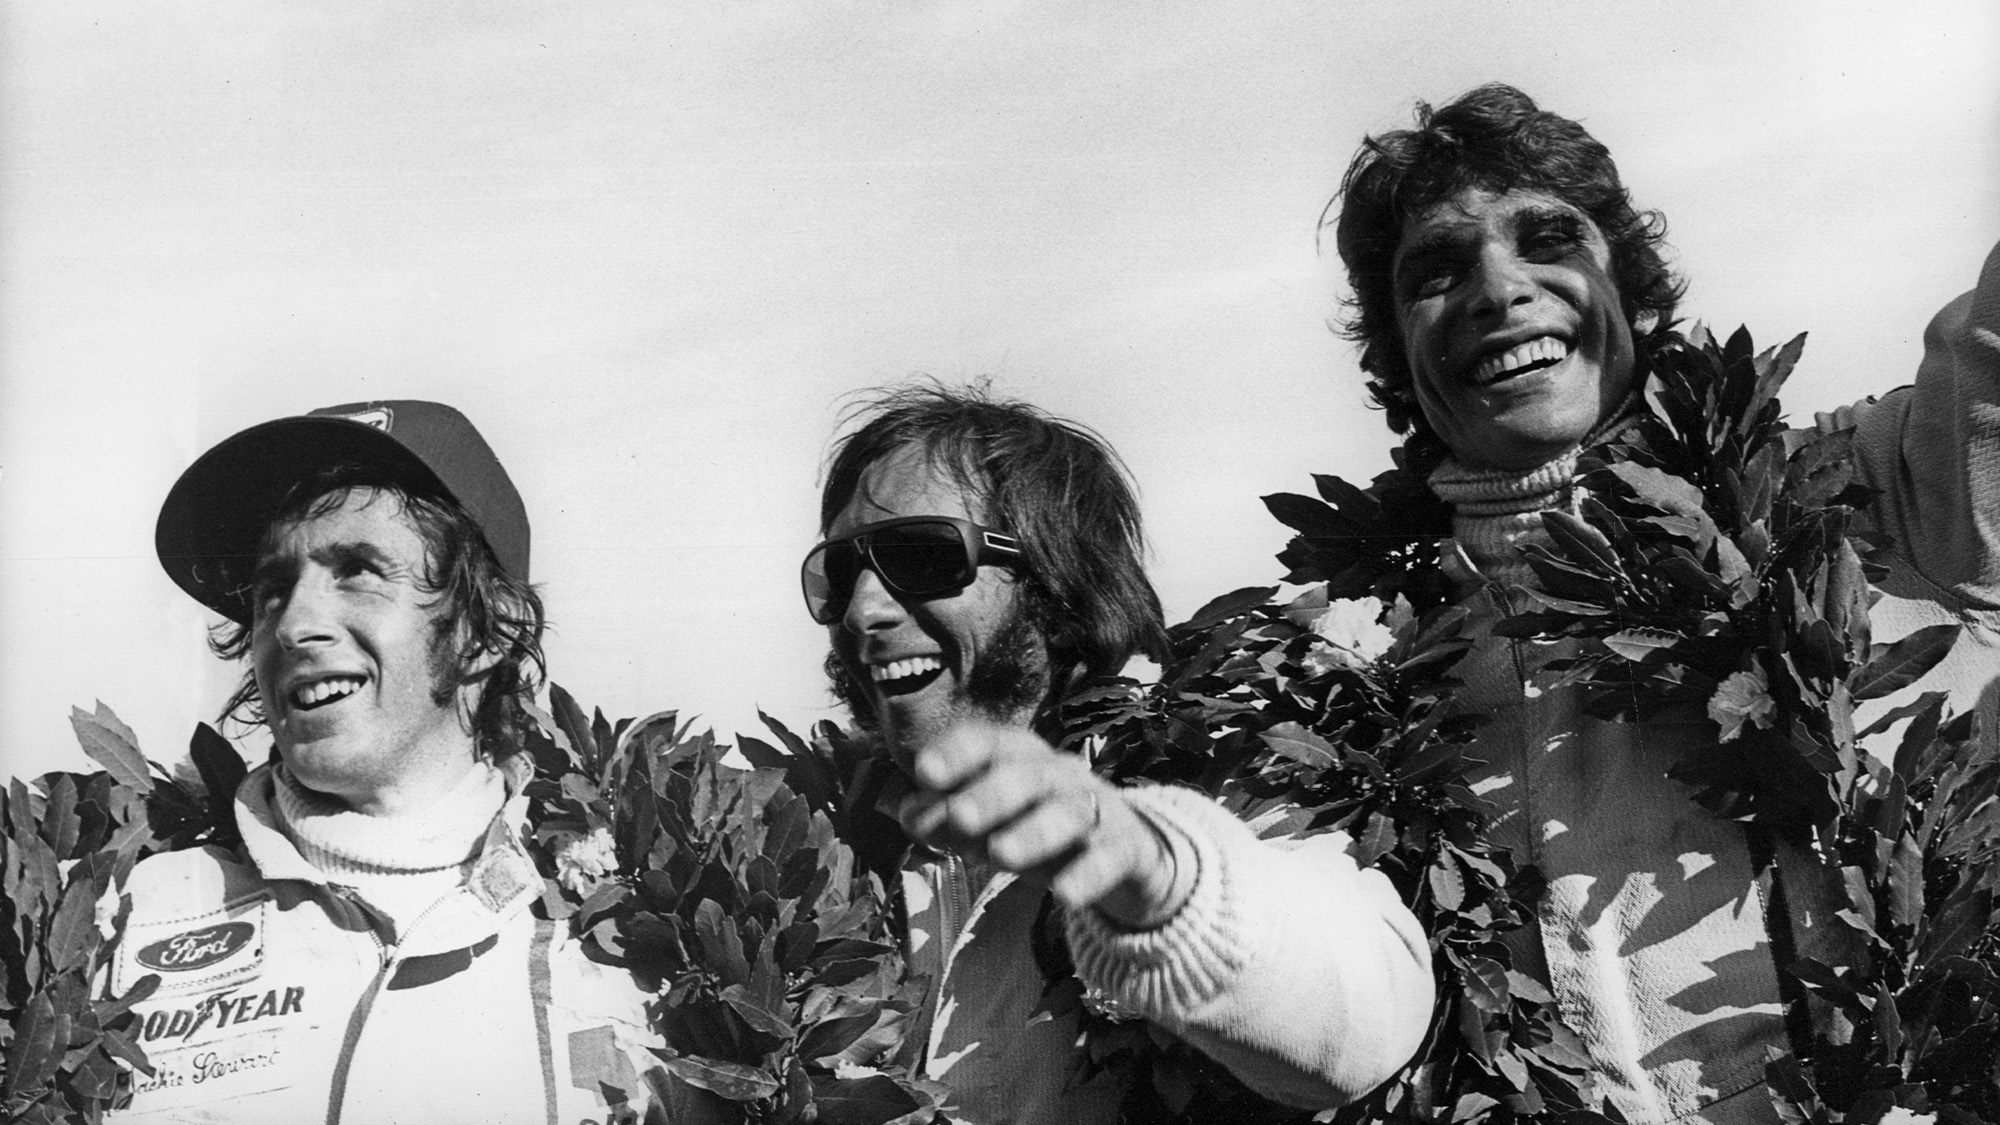 Emerson Fittipaldi Francois Cevert and JAckie Stewart on the podium at the 1973 Argentinian Grand Prix